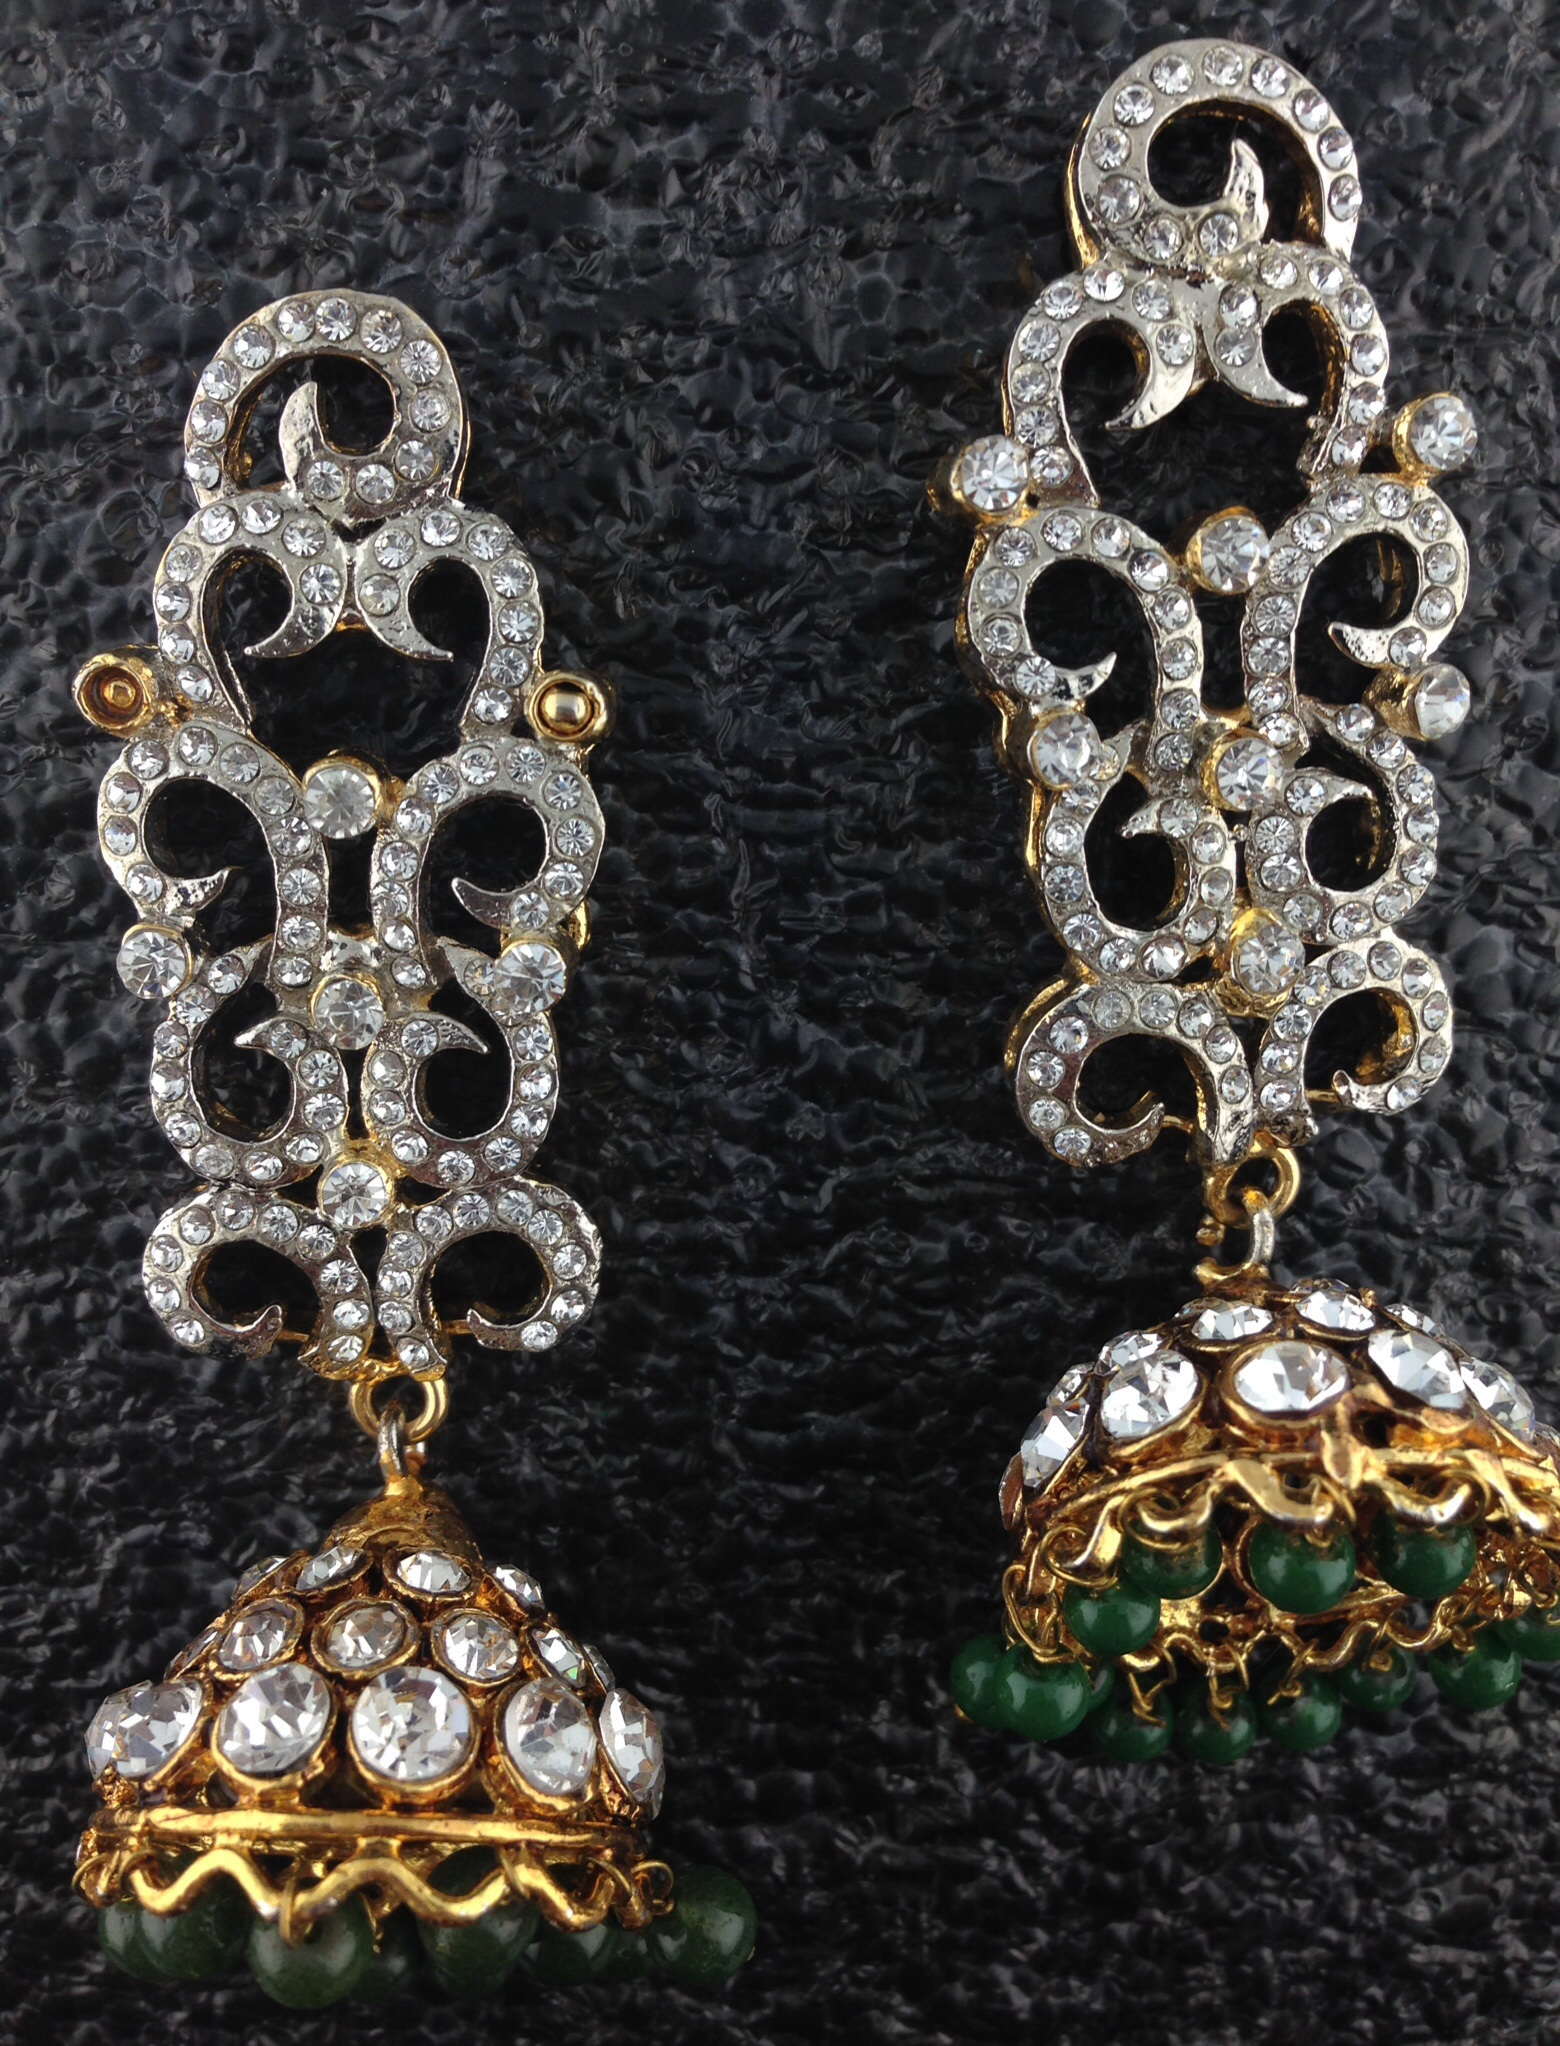 Gold Polished With Emeralds And Crystals.